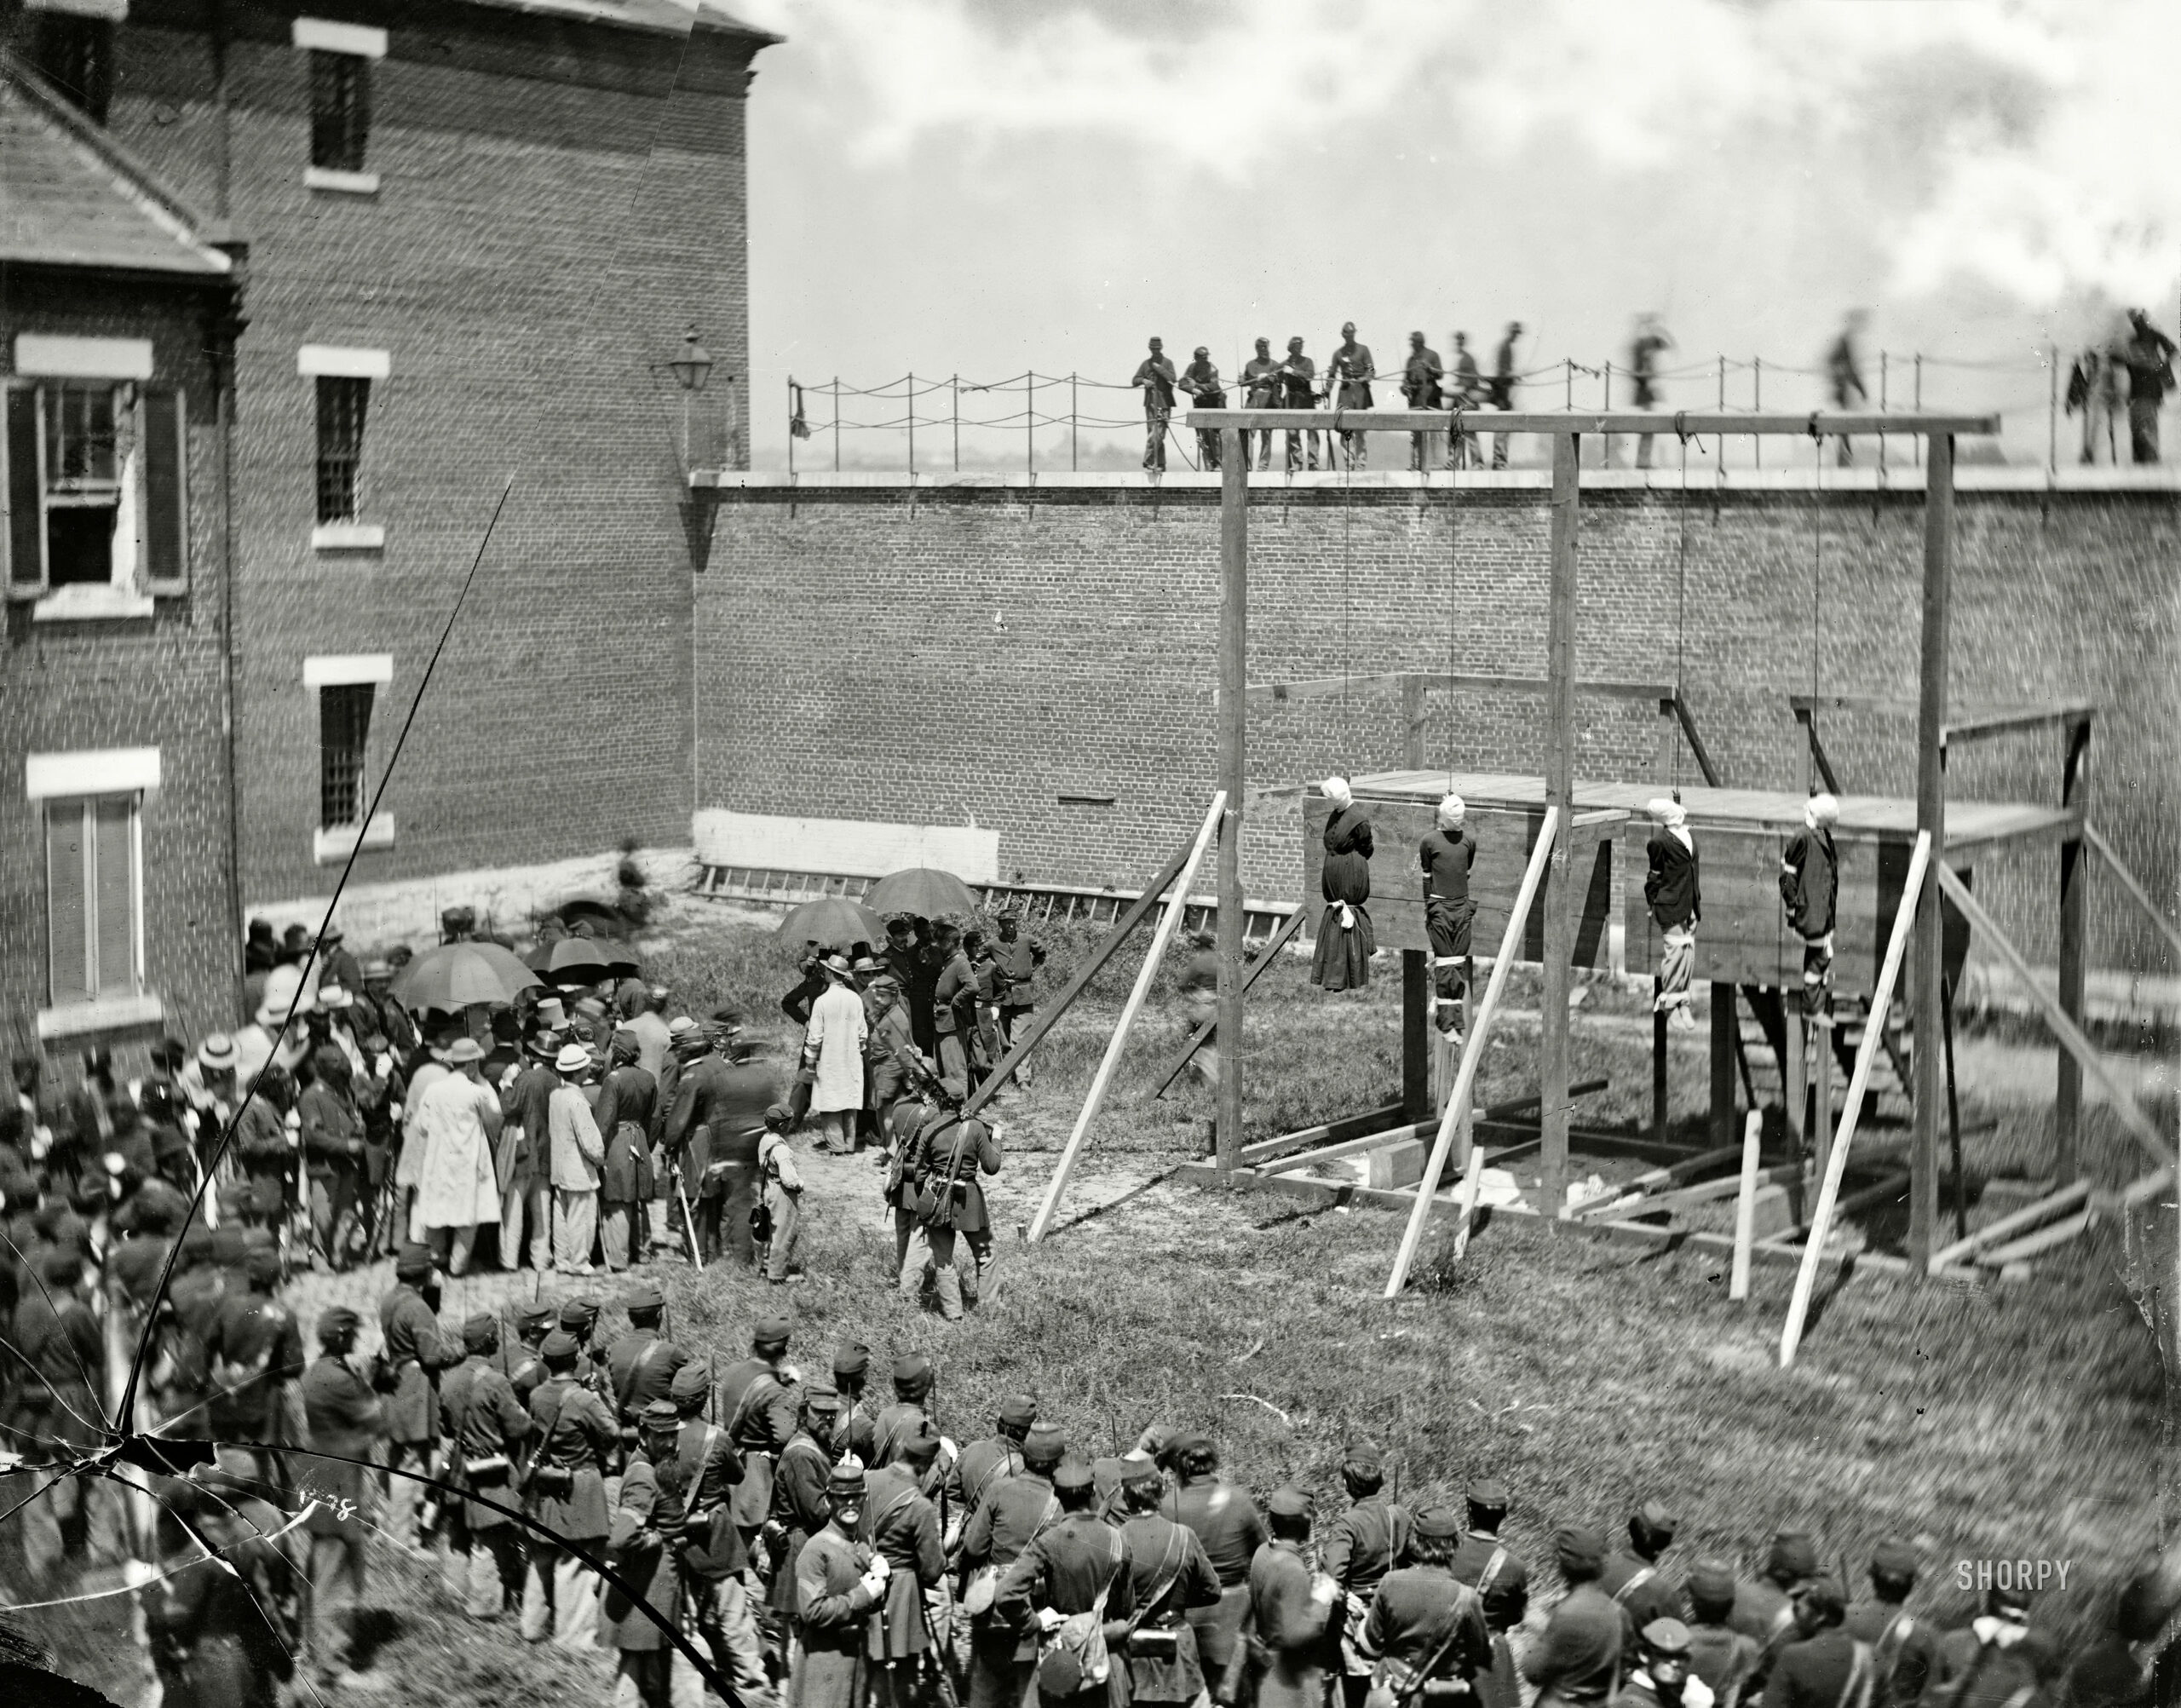 Washington, D.C. Hanging hooded bodies of the four conspirators; crowd departing, July 7, 1865